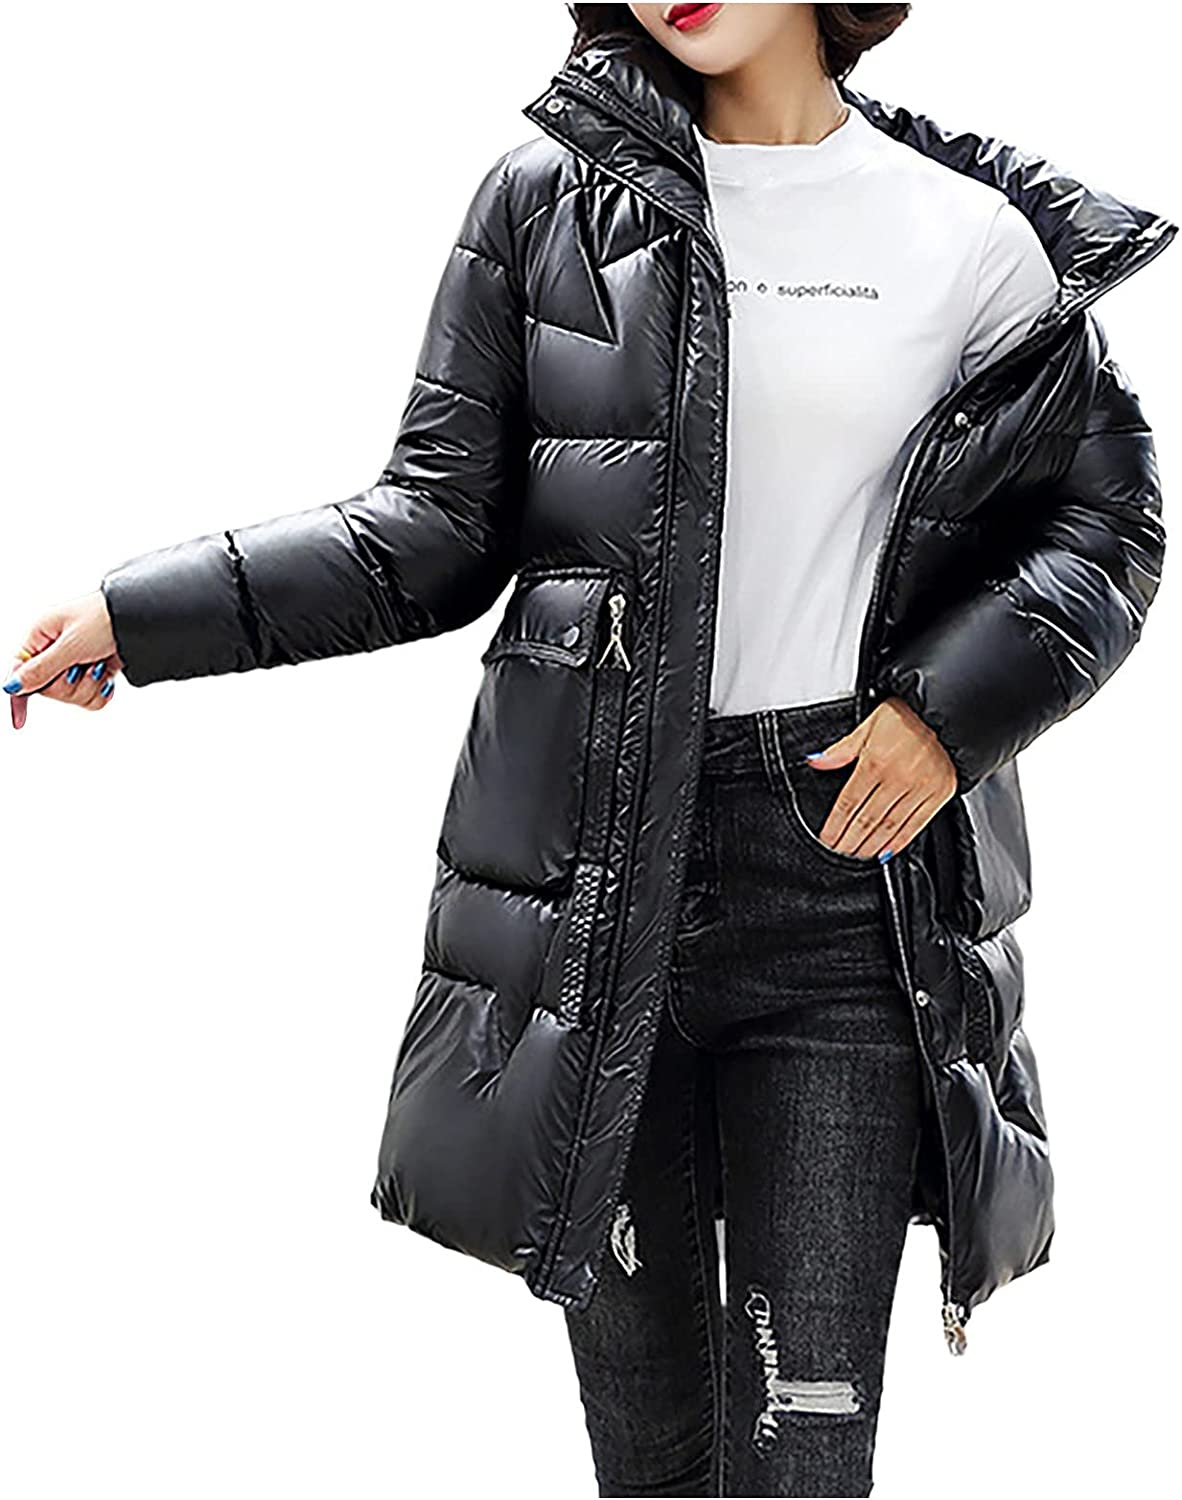 Winter Coats for Women Long-Sleeved Solid Color Down Jacket With Zipper Mid-Length